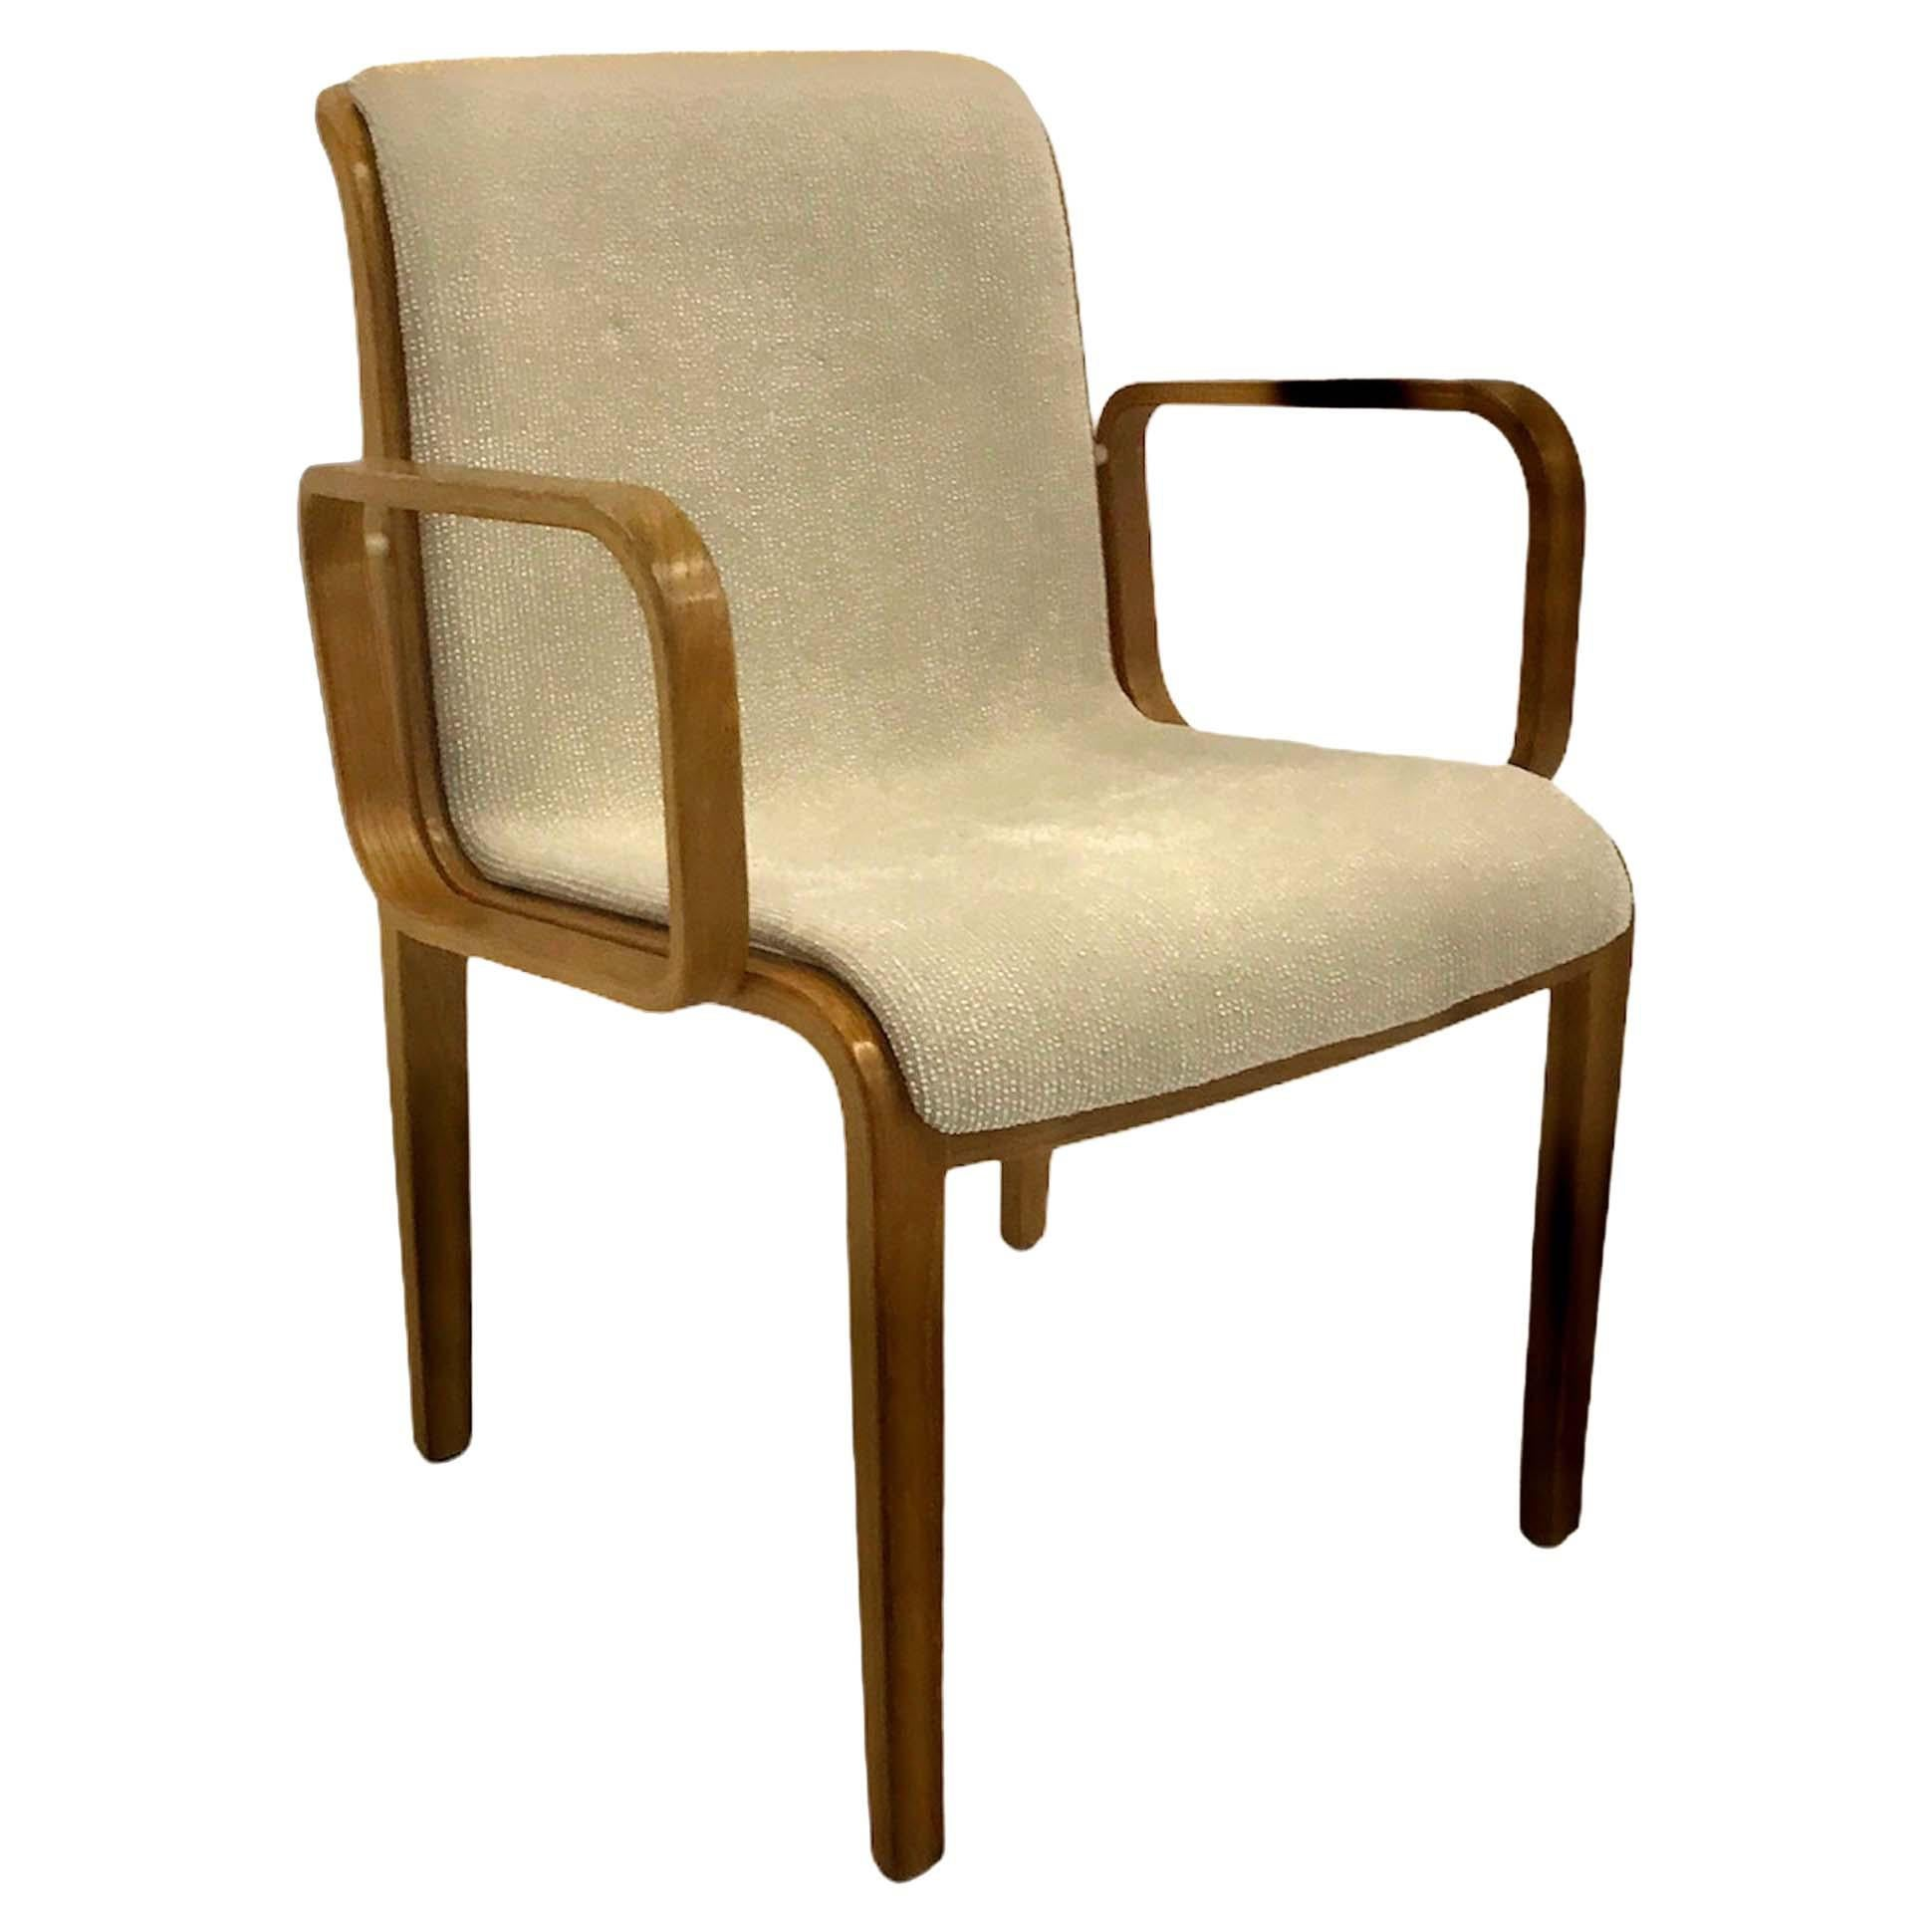 Bill Stephens Midcentury 1300 Series Armed Dining Chair for Knoll